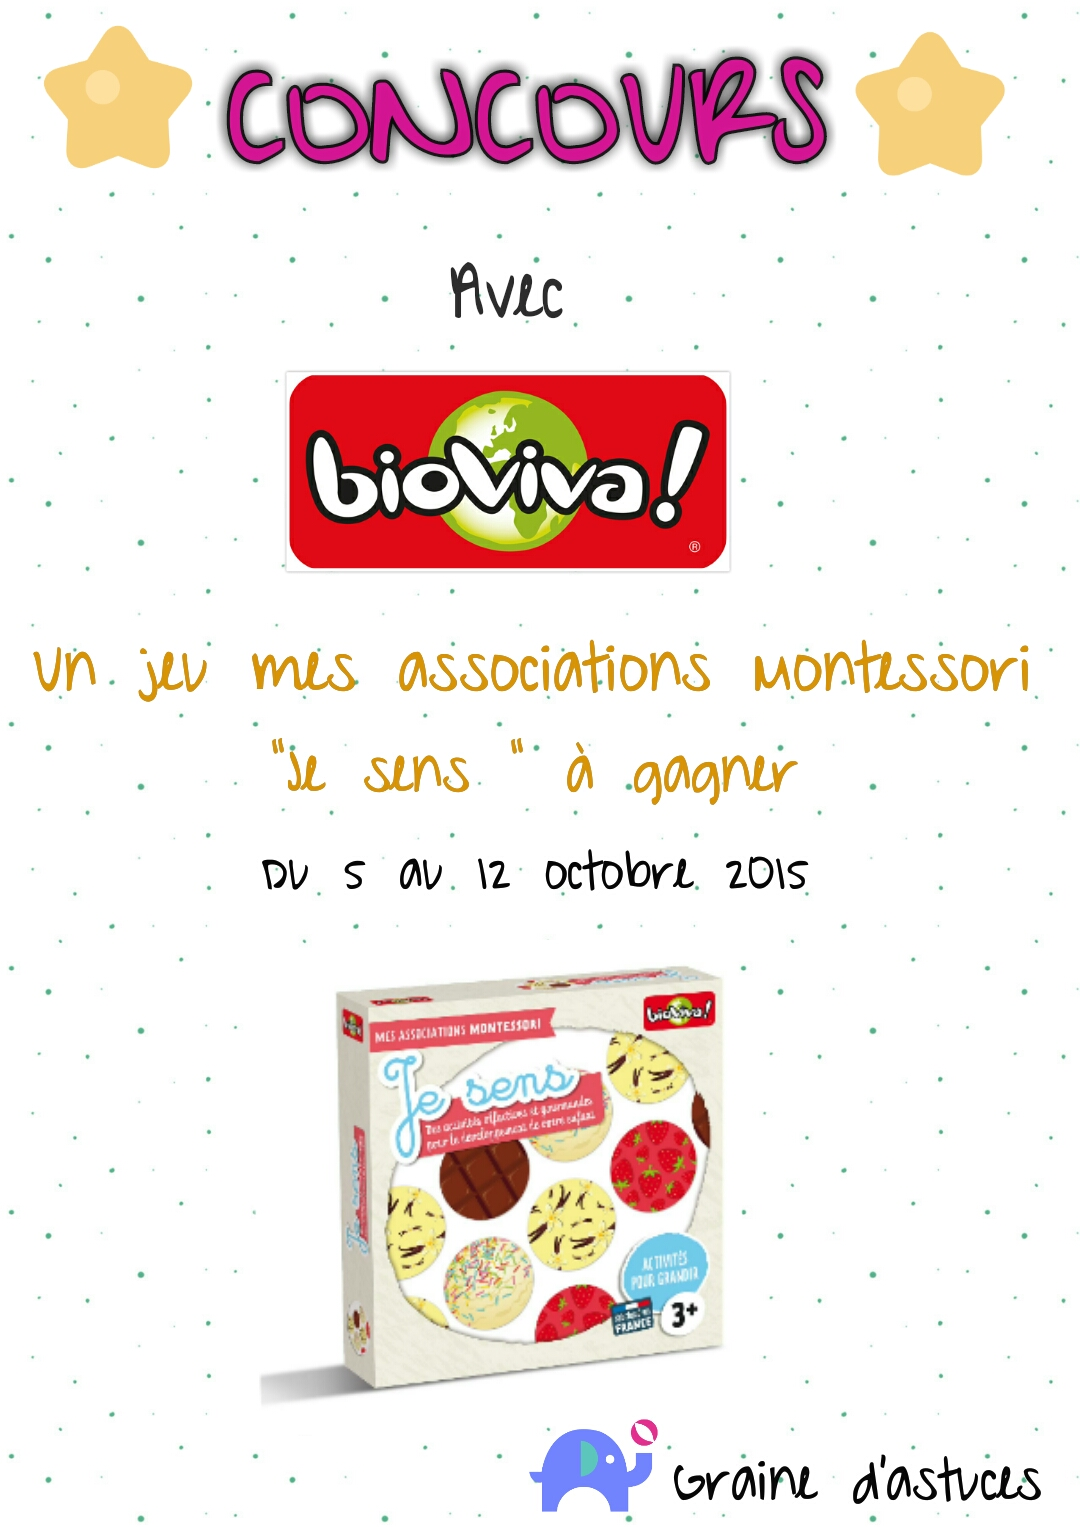 bioviva mes associations montessori je sens